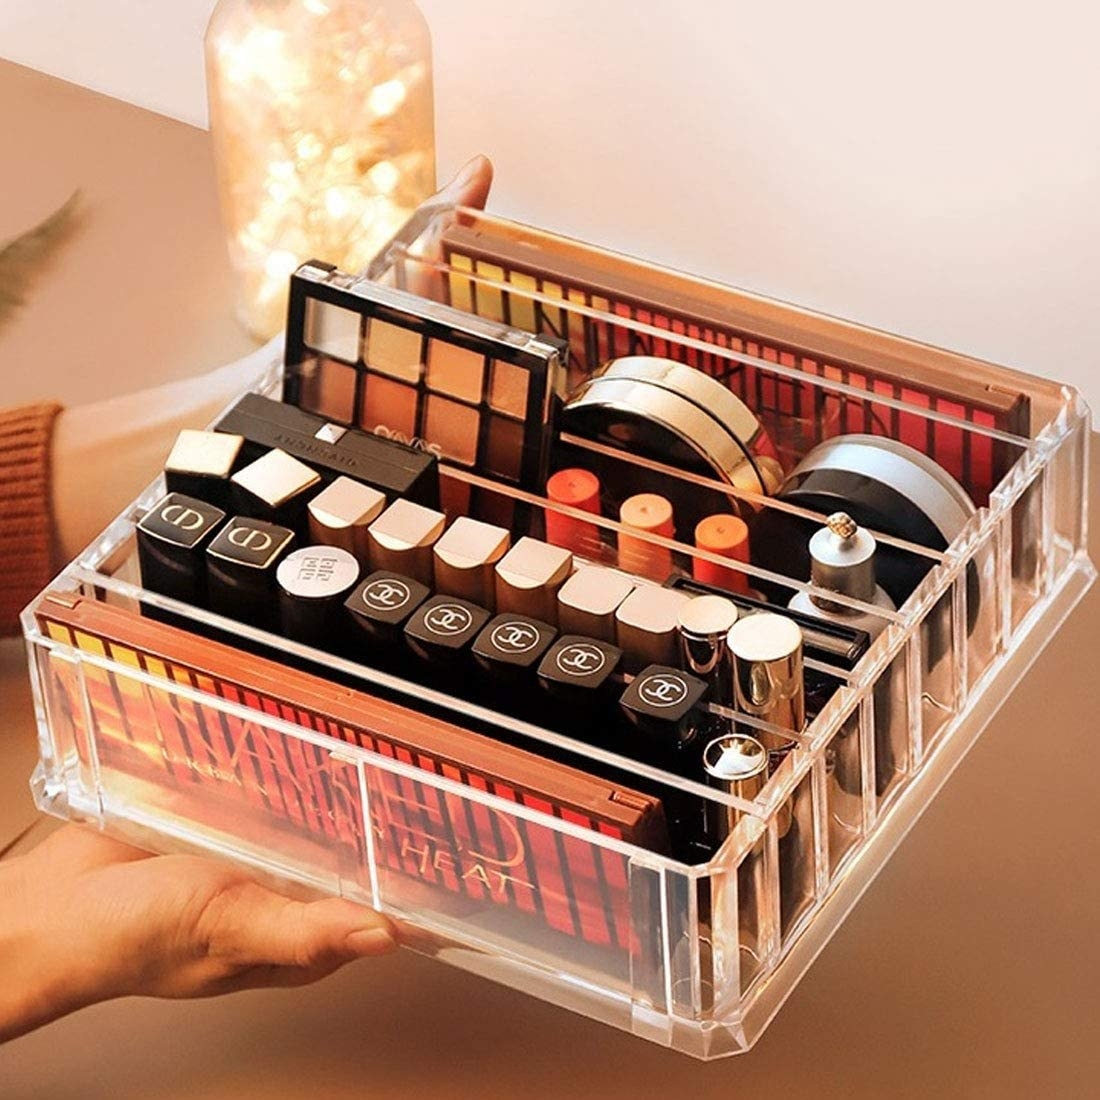 A person holding the makeup organizer filled with makeup